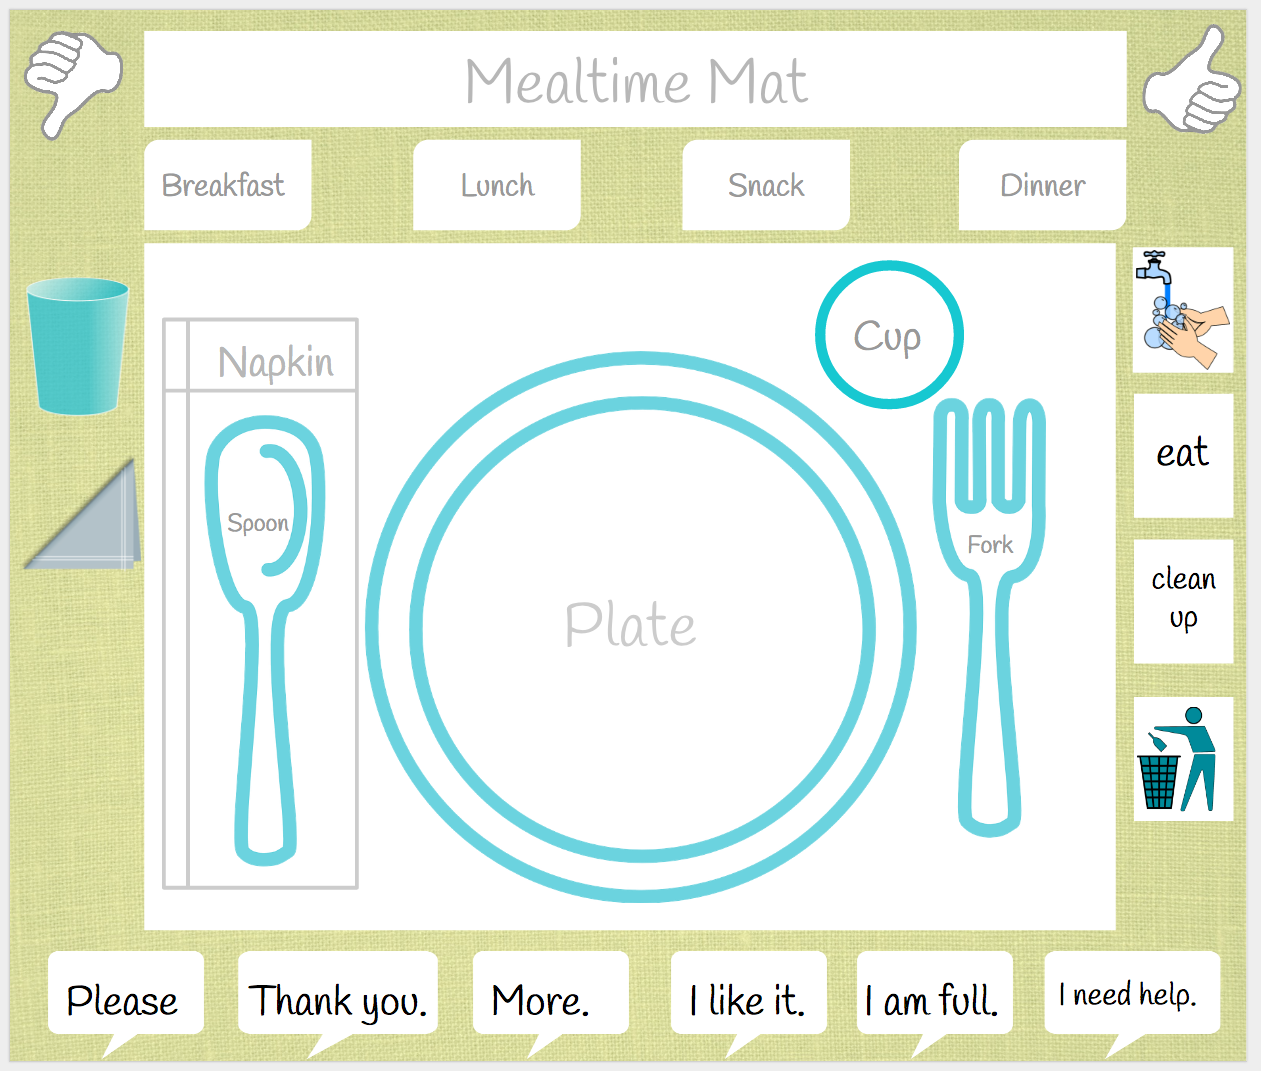 image about Printable Placemat titled Mealtime Printable Placemat